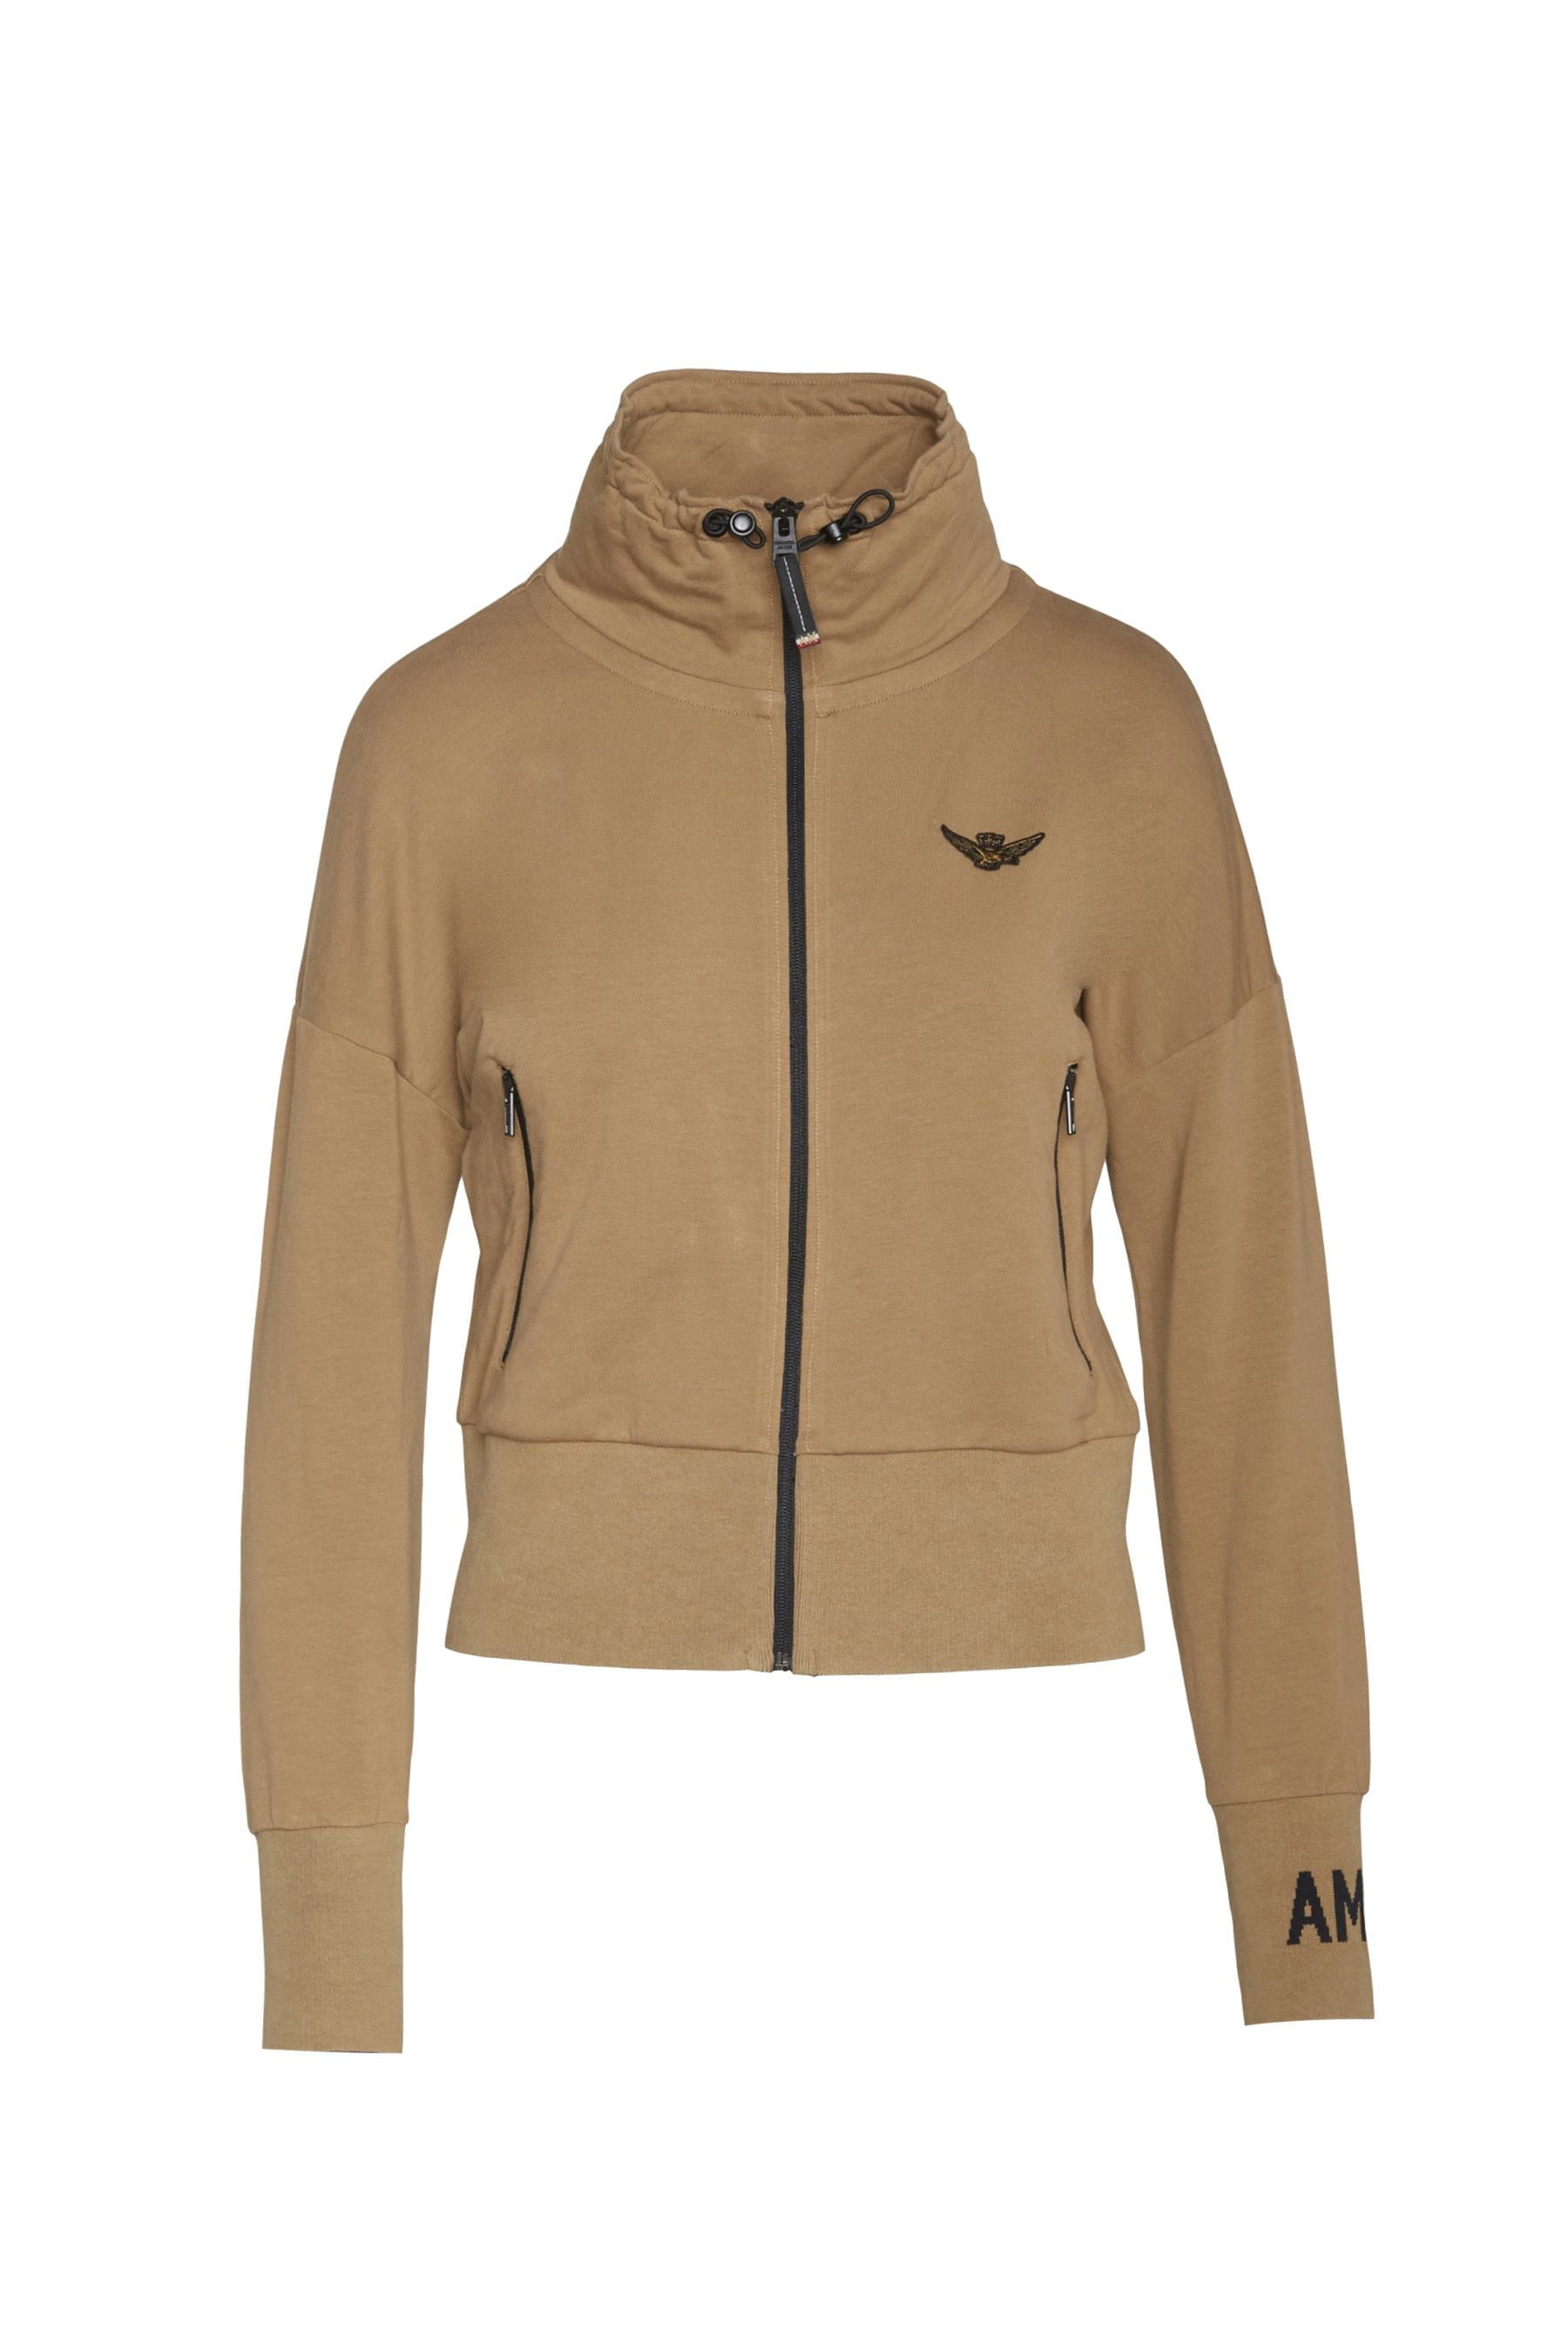 FE1560 - FELPA FULL ZIP